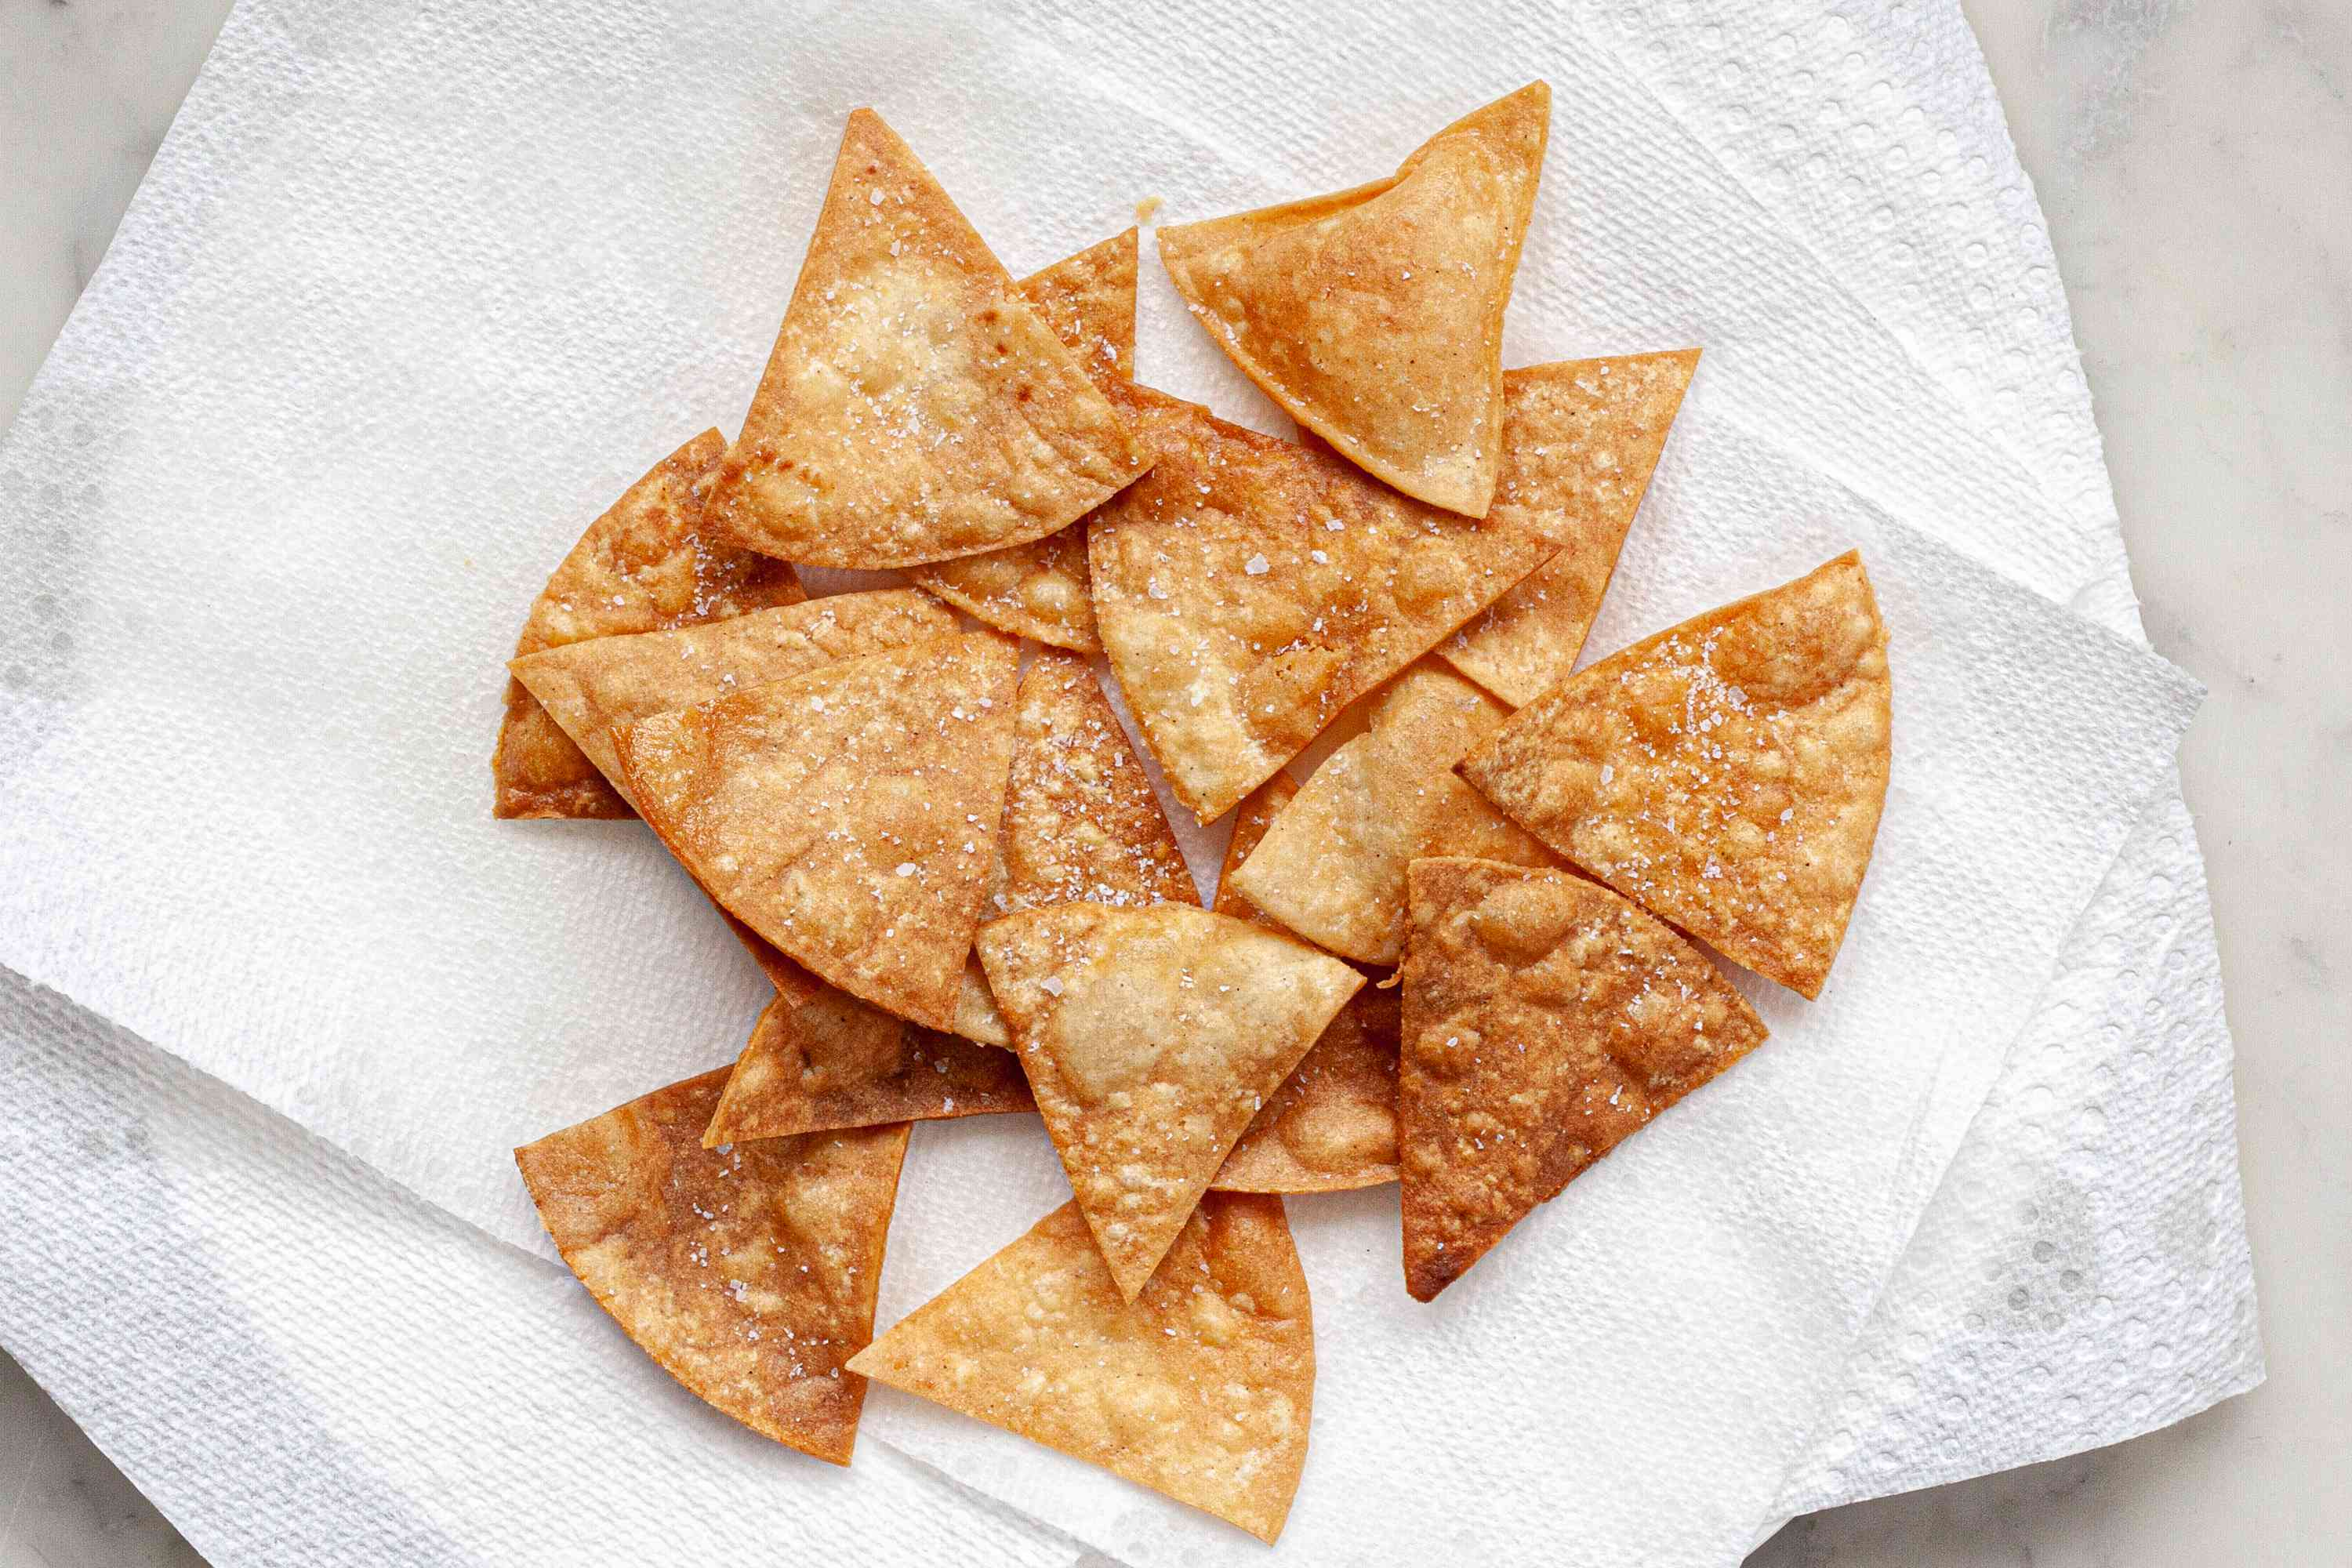 Crispy homemade tortilla chips draining on paper towels.